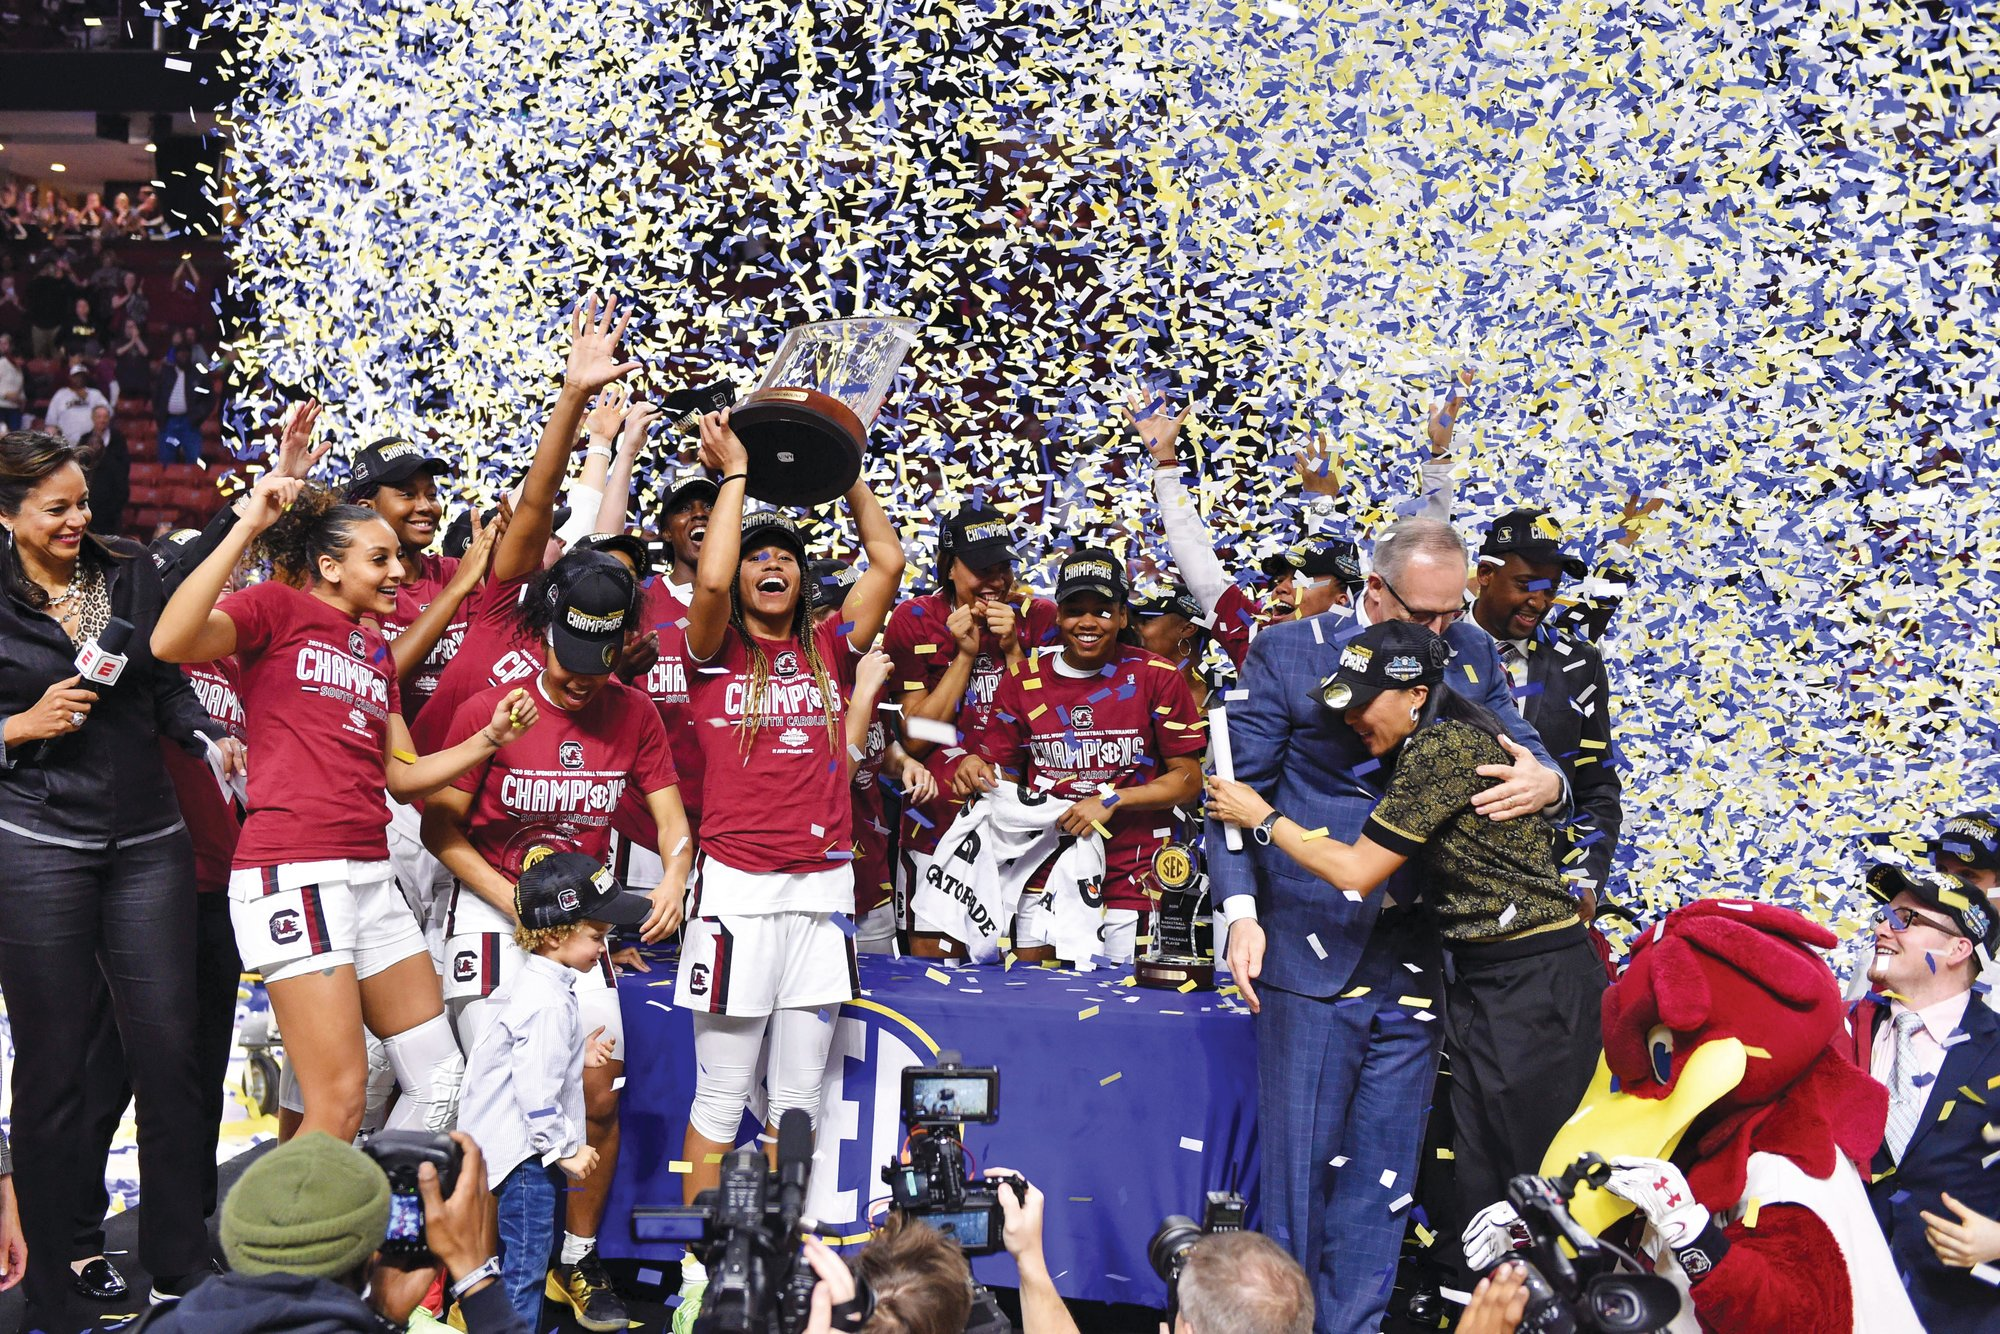 The South Carolina women's basketball team, seen here celebrating its SEC championship, received the best consolation prize it could hope for after the NCAA tournament was cancelled, as the Gamecocks finished the season No. 1 in The Associated Press Top 25 for the first time in program history.